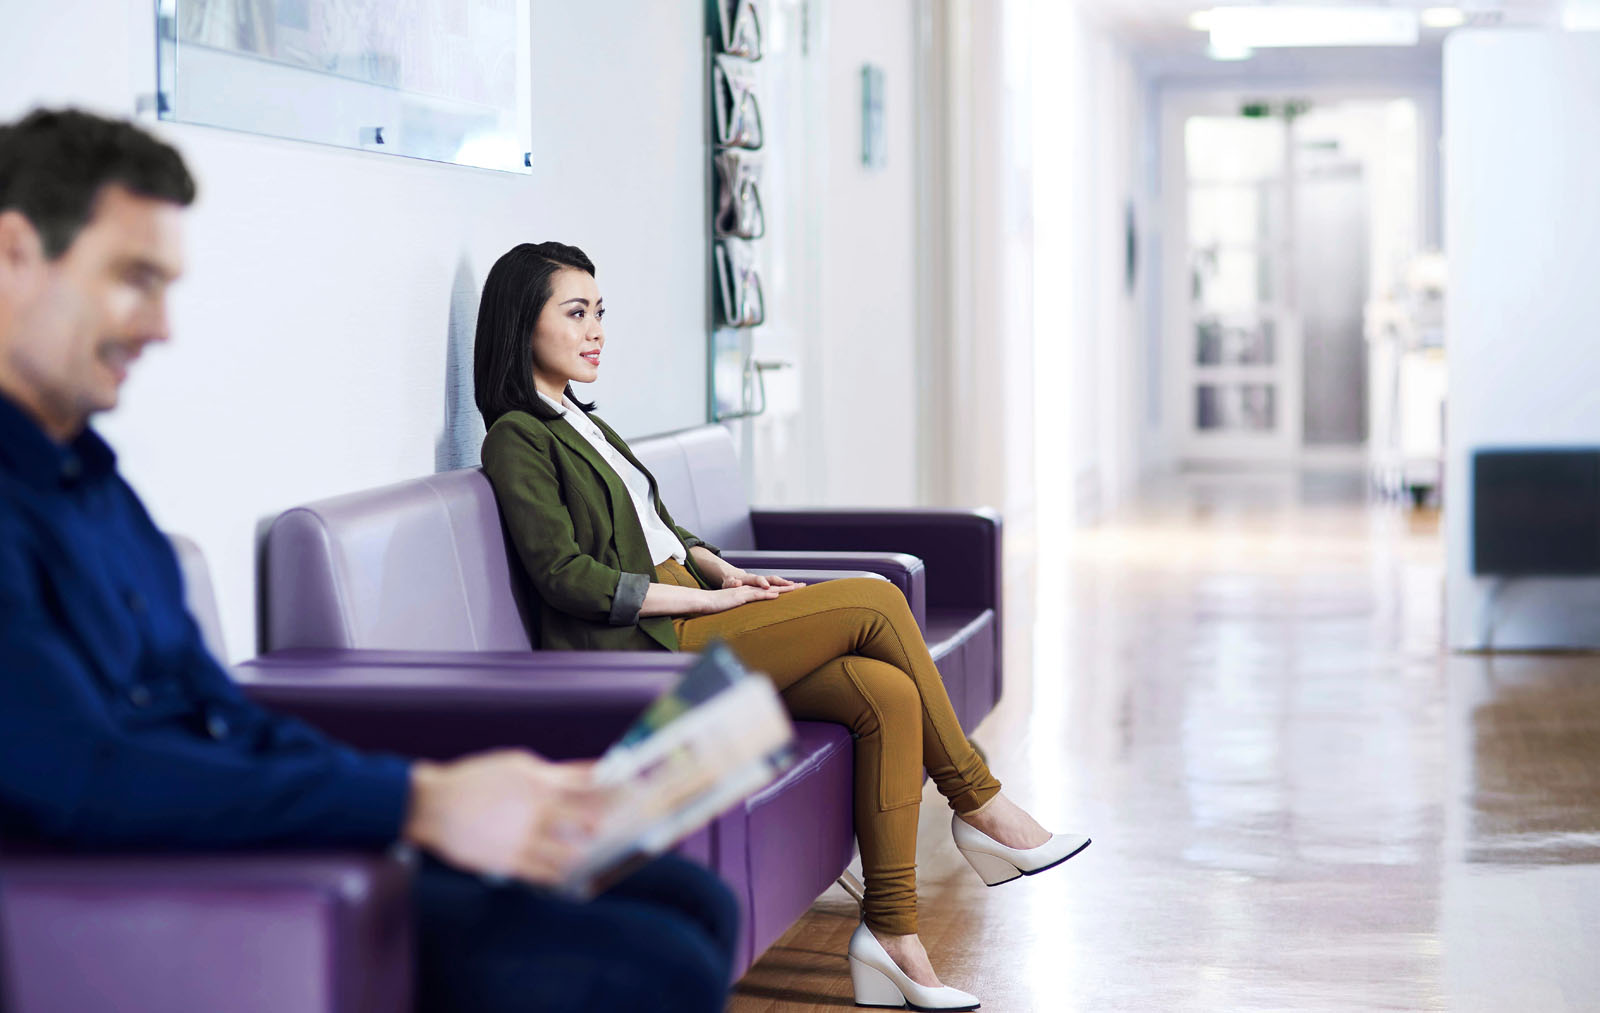 Patients in the waiting room at a private hospital